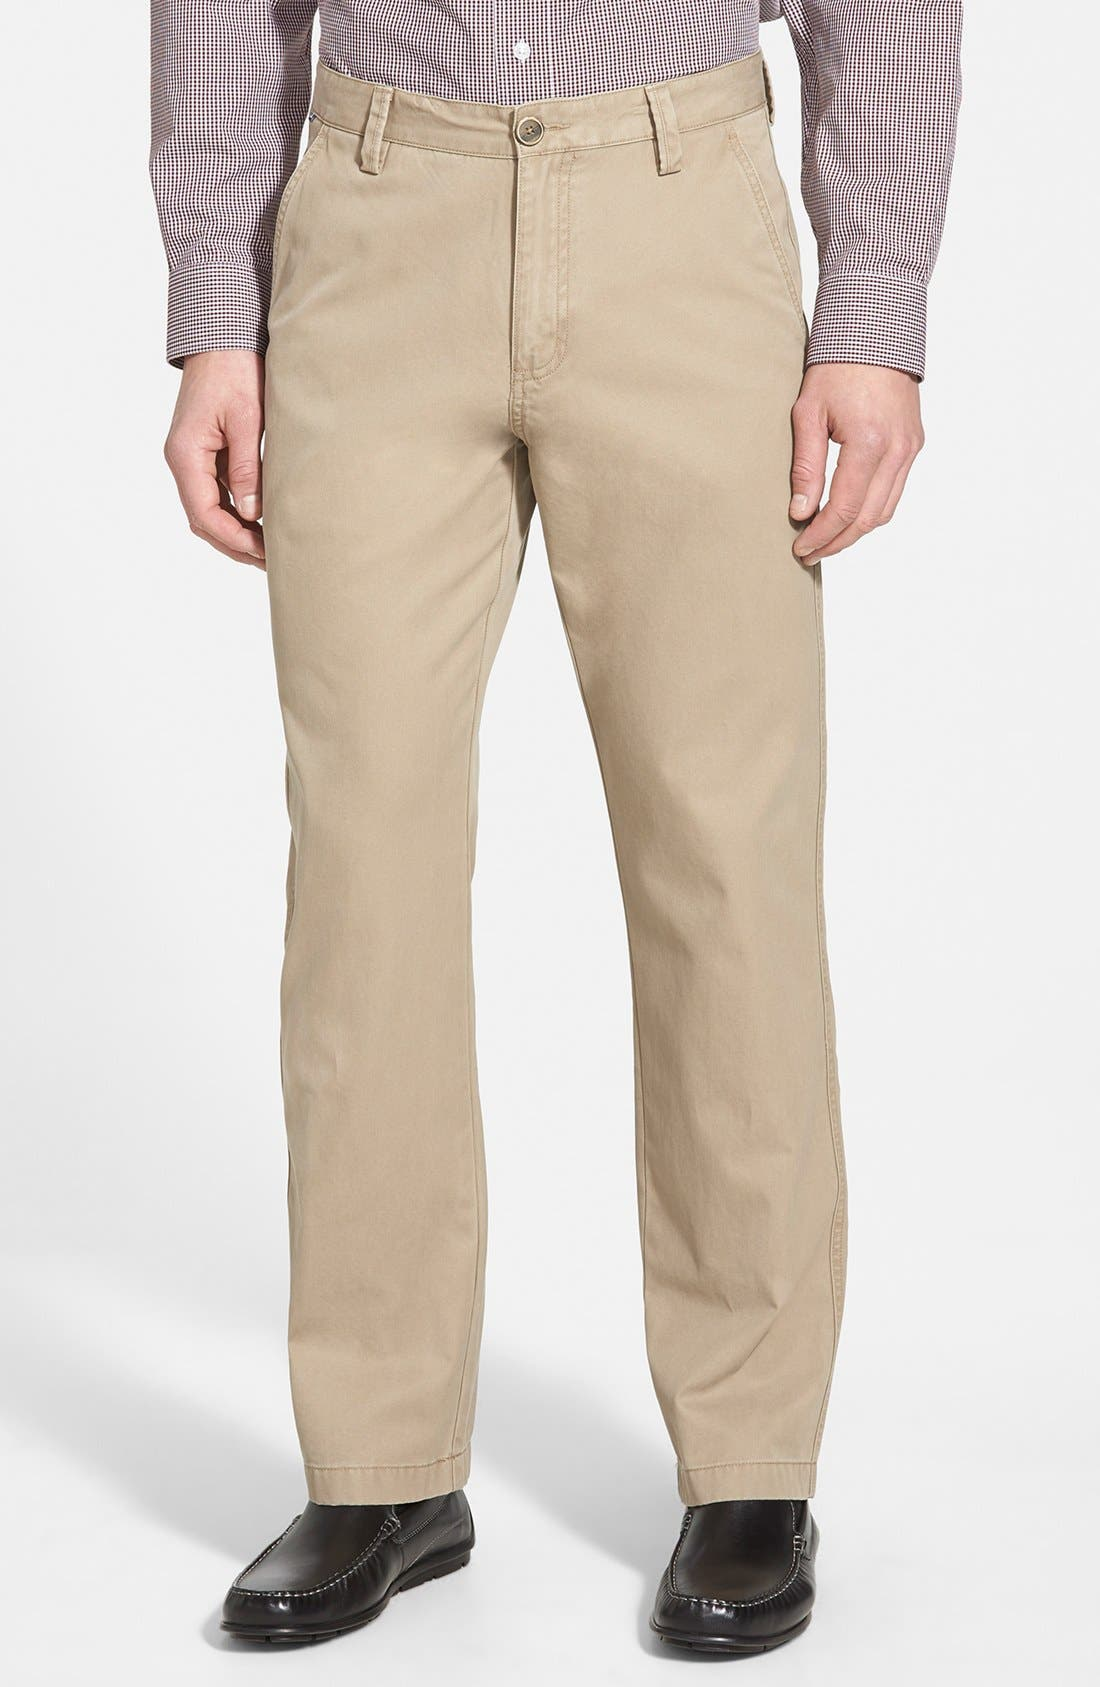 Cutter & Buck Beckett Straight Leg Washed Cotton Pants